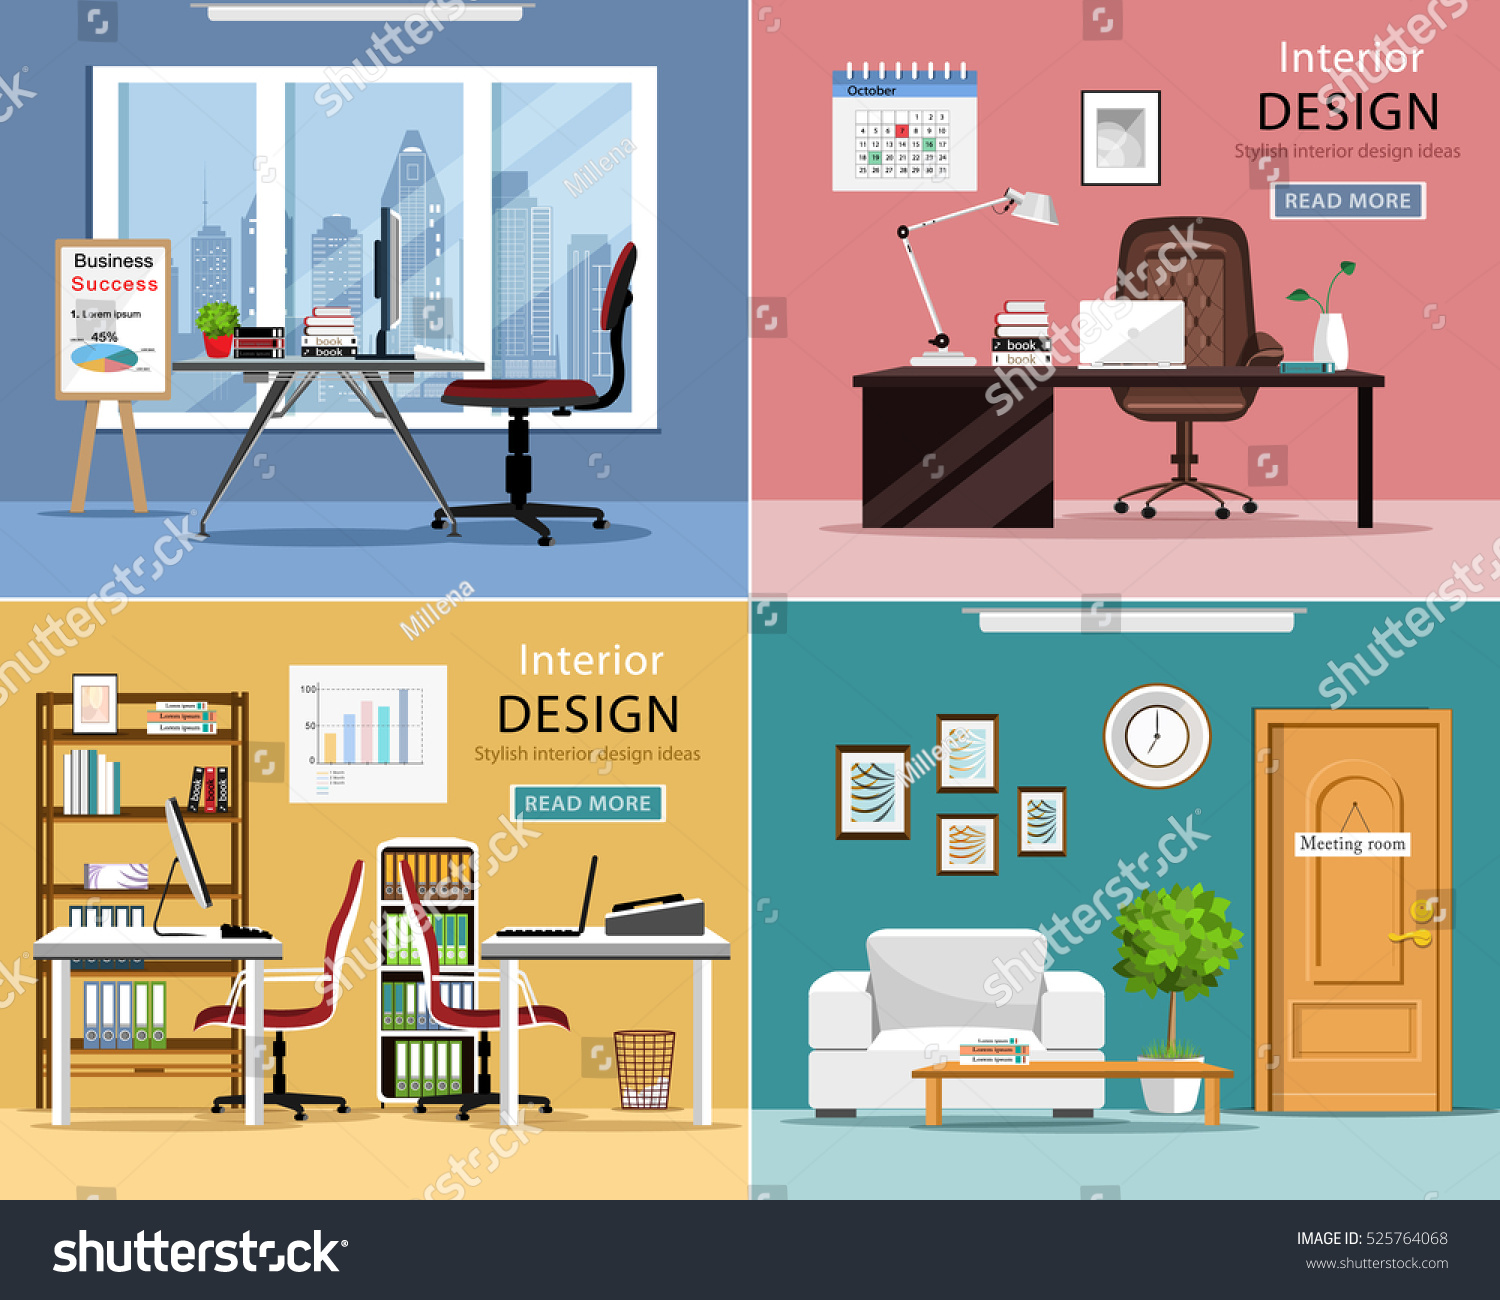 Interior Design Supplies office rooms set detailed graphic room stock vector 525764068